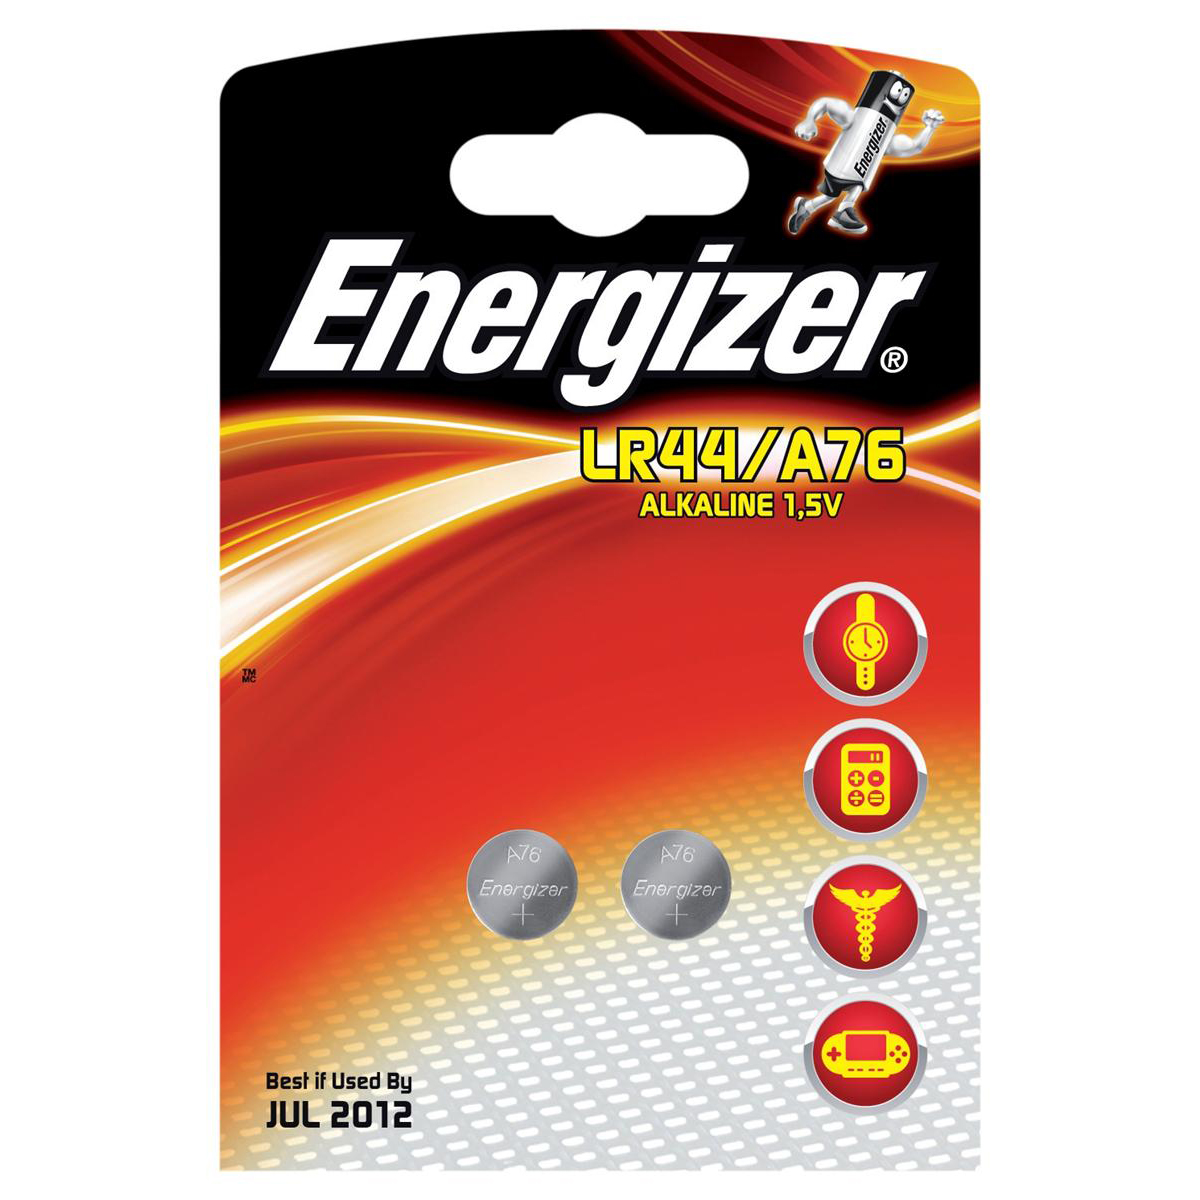 Button Cell Energizer FSB-2 Battery Alkaline LR44 1.5V Ref 623055 [Pack 2]